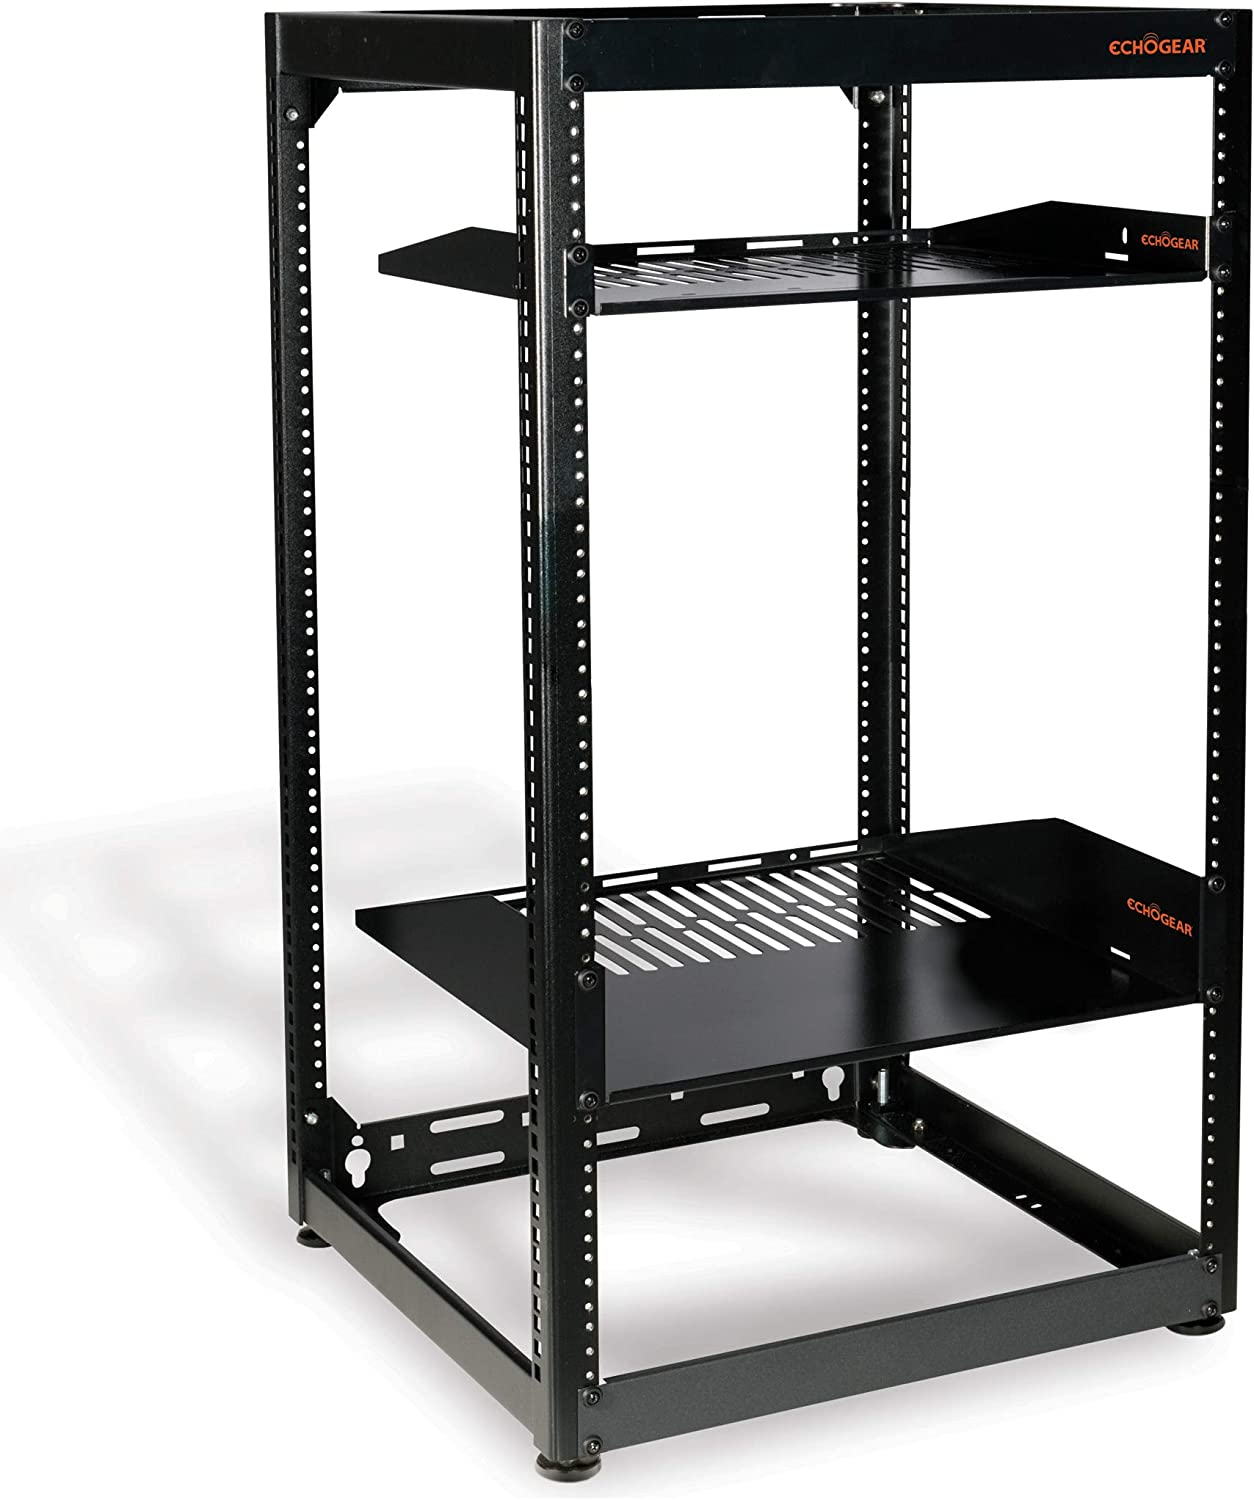 ECHOGEAR 20U Open Frame Rack - Heavy Duty 4 Post Design Holds All Your Network & AV Gear - Includes 2 Vented Shelves & is Wall Mountable